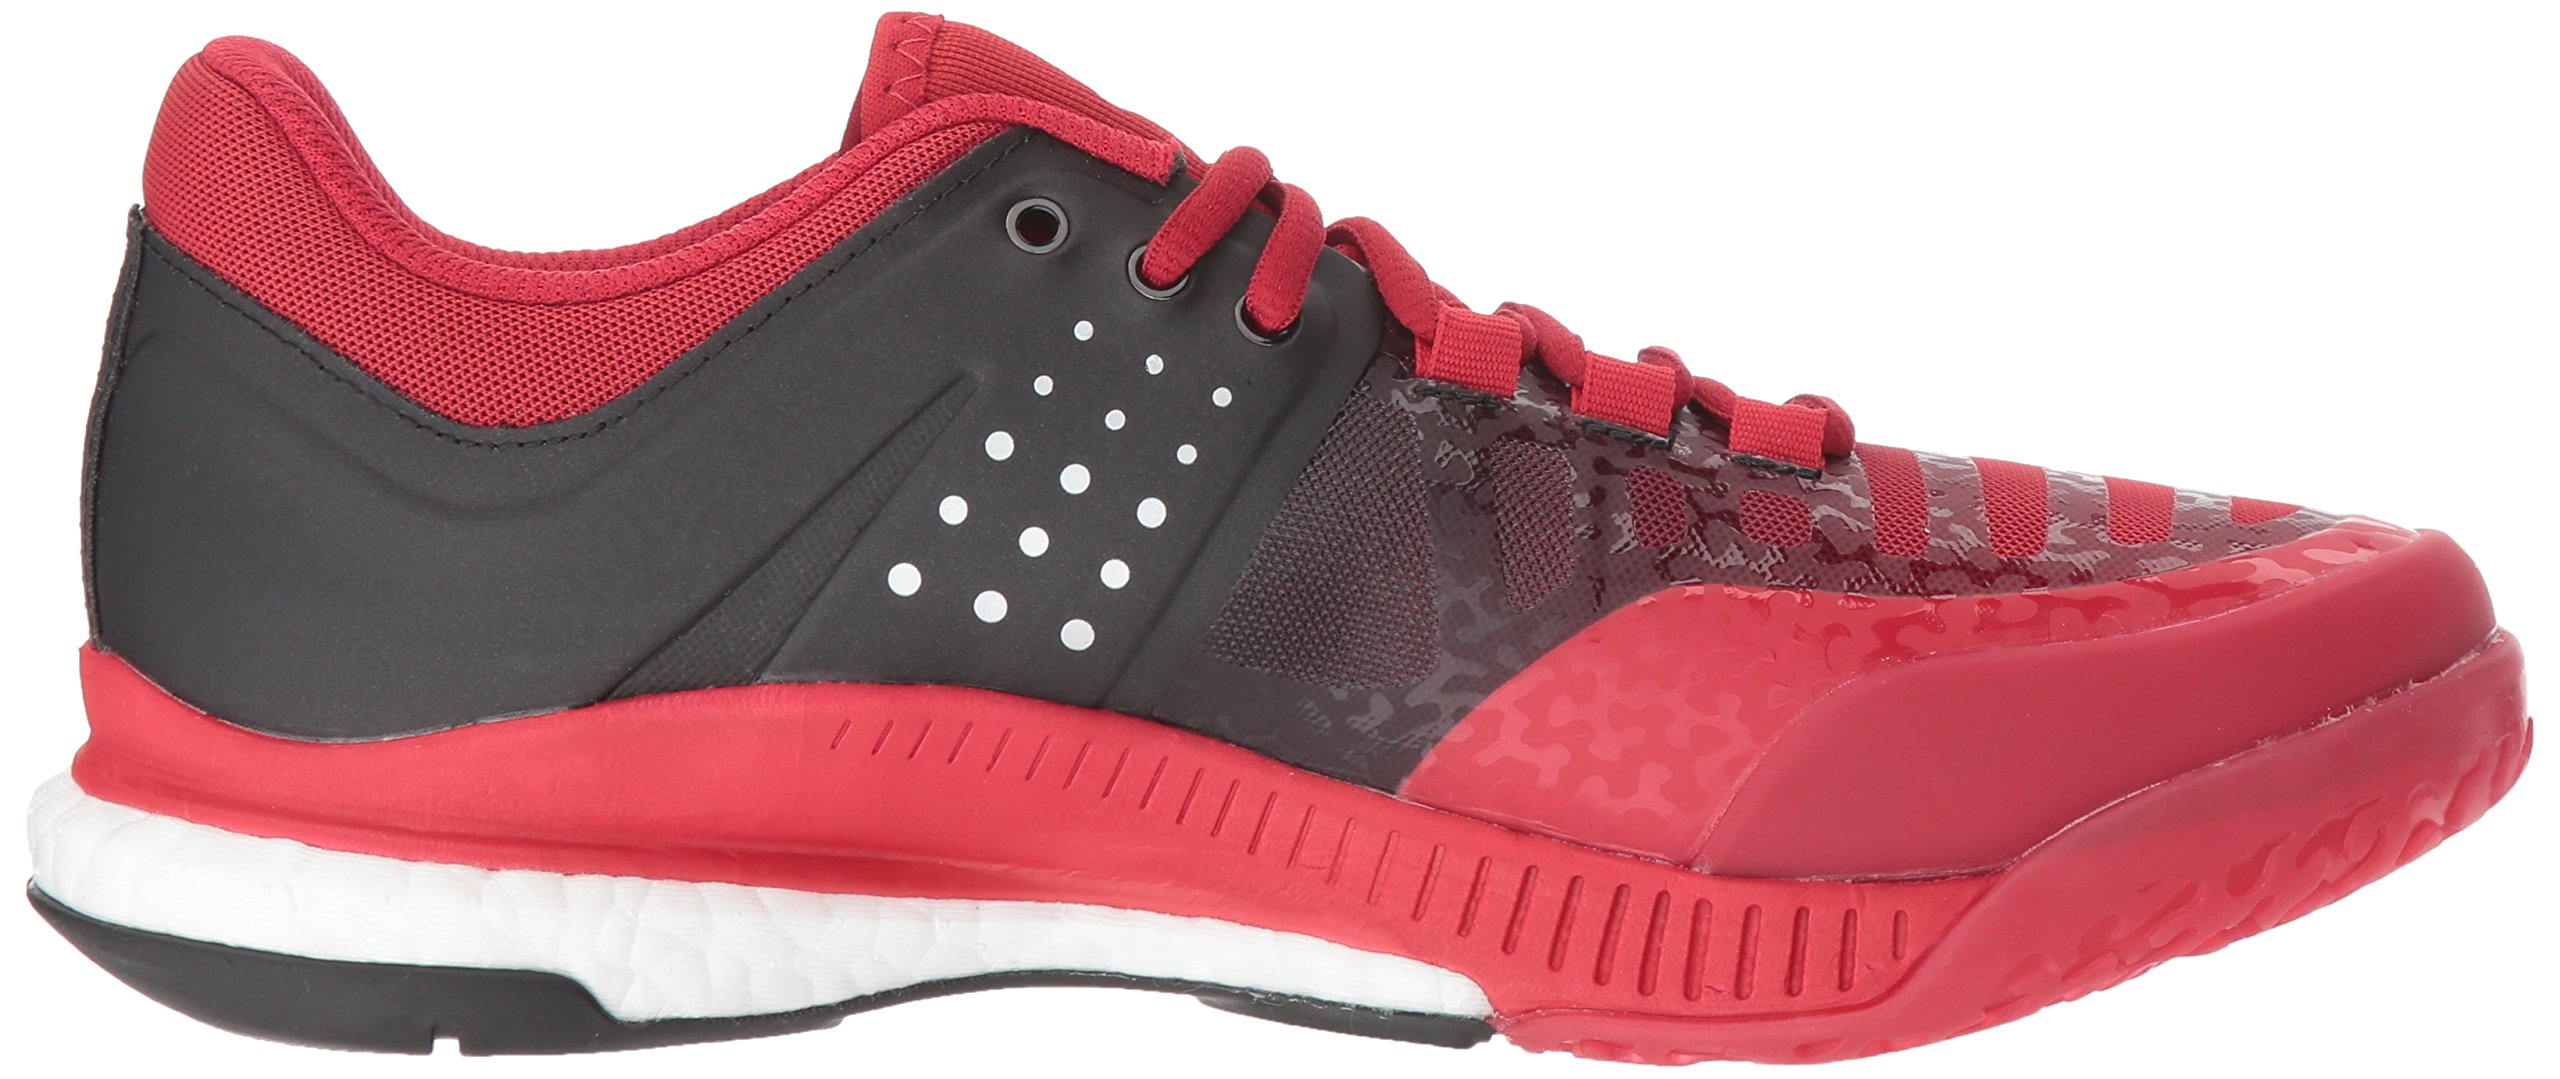 Adidas Women's Shoes Crazyflight X Volleyball Shoe Black/Metallic Silver/Power Red,7.5 by adidas Originals (Image #7)